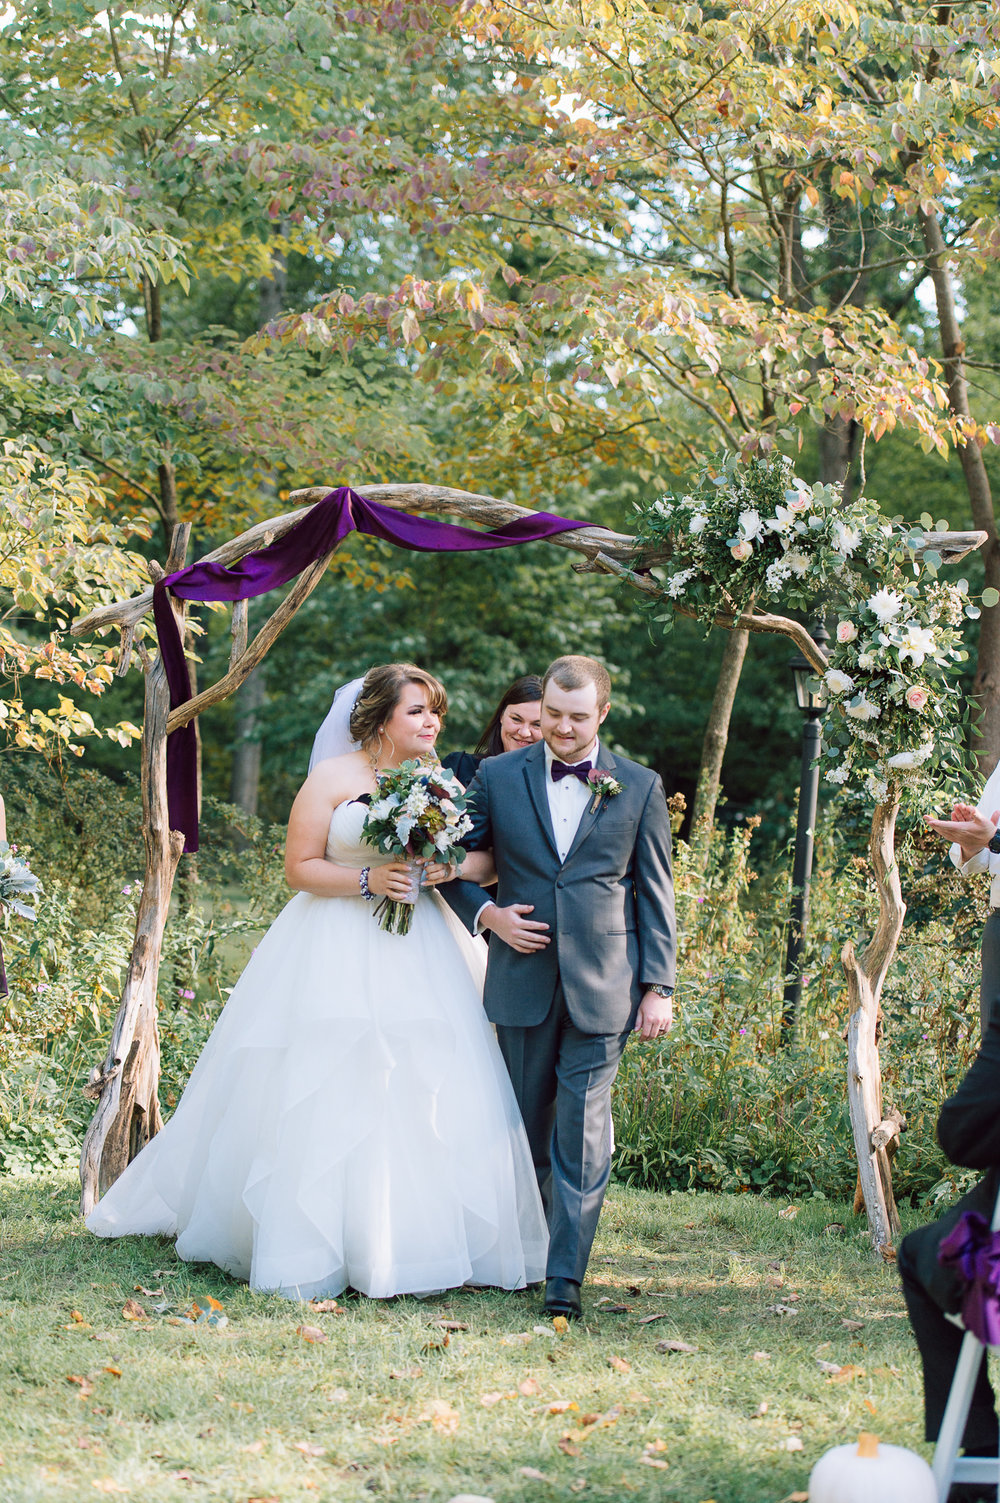 youseephotography_virginiawedding_fall_WallaceManor_EmilyCody (41).jpg